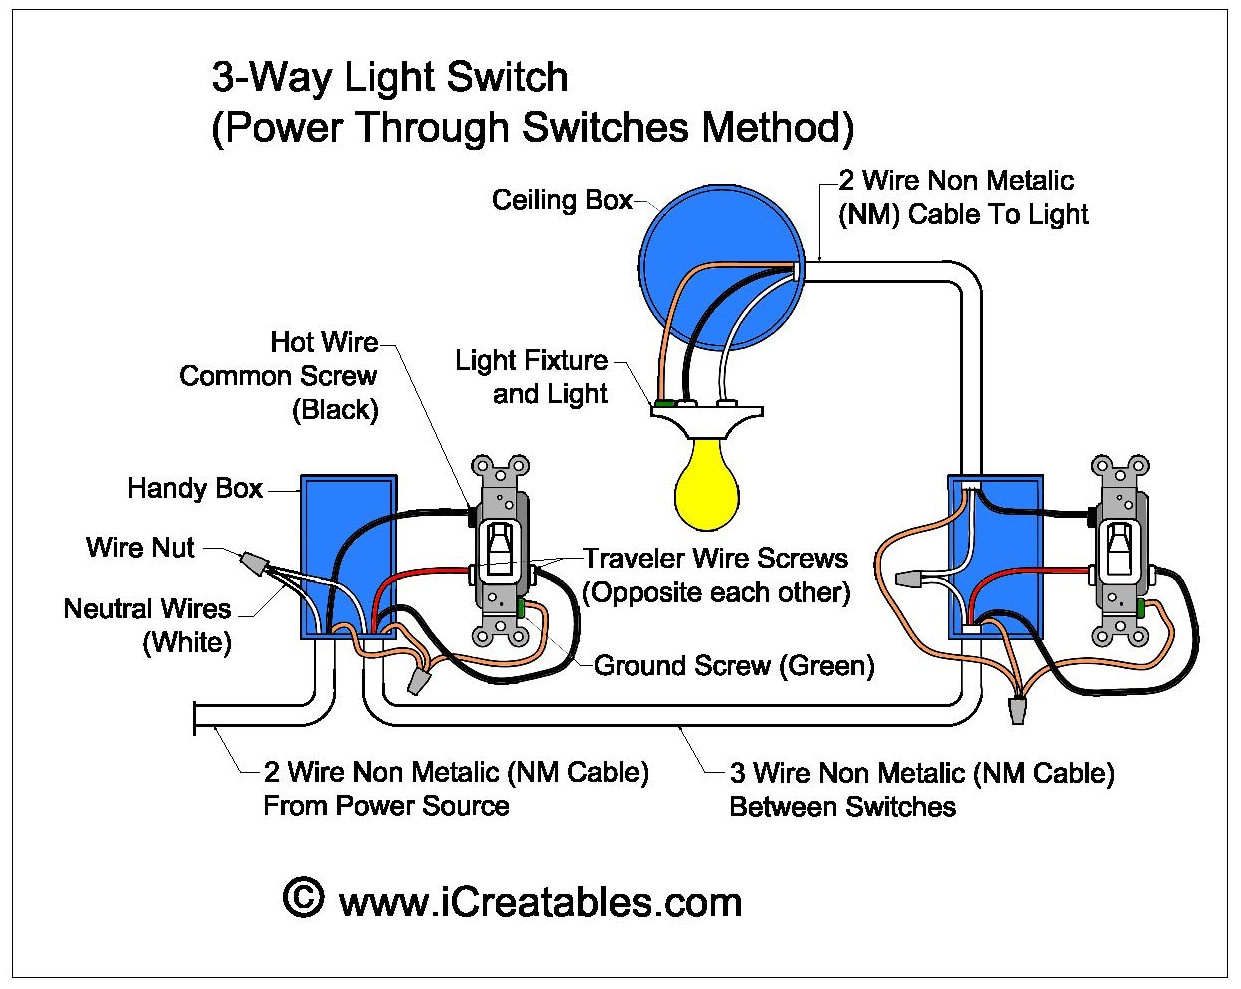 Wiring Diagram For Light With 3 Switches : Three way switch buildmyowncabin wiring diagram